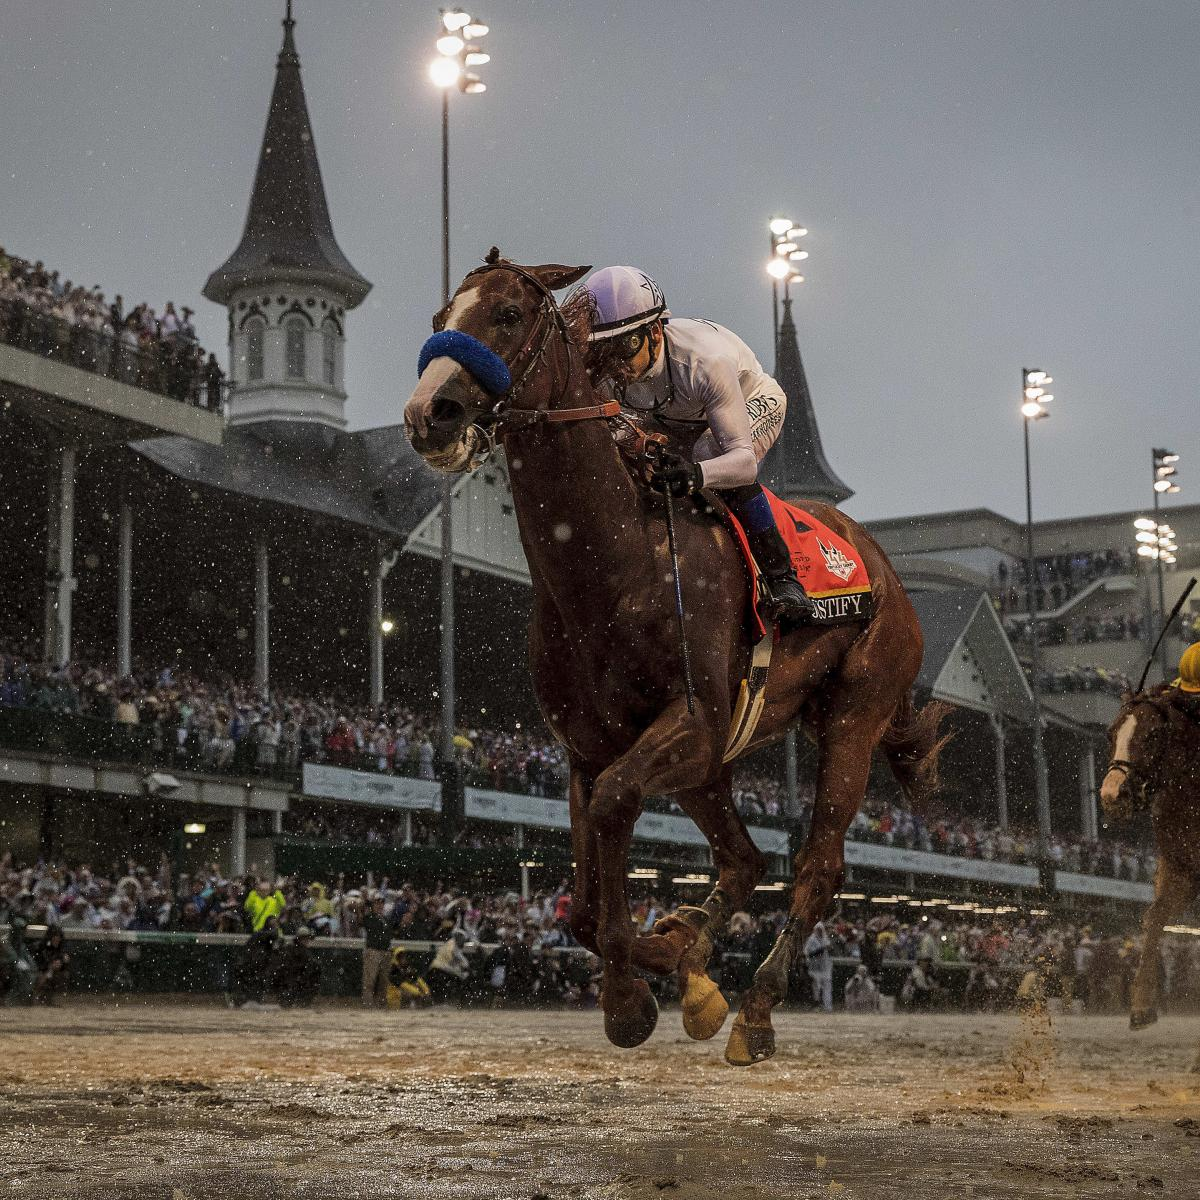 Preakness 2018: Horses, Favorites and Contenders for This Year's Field